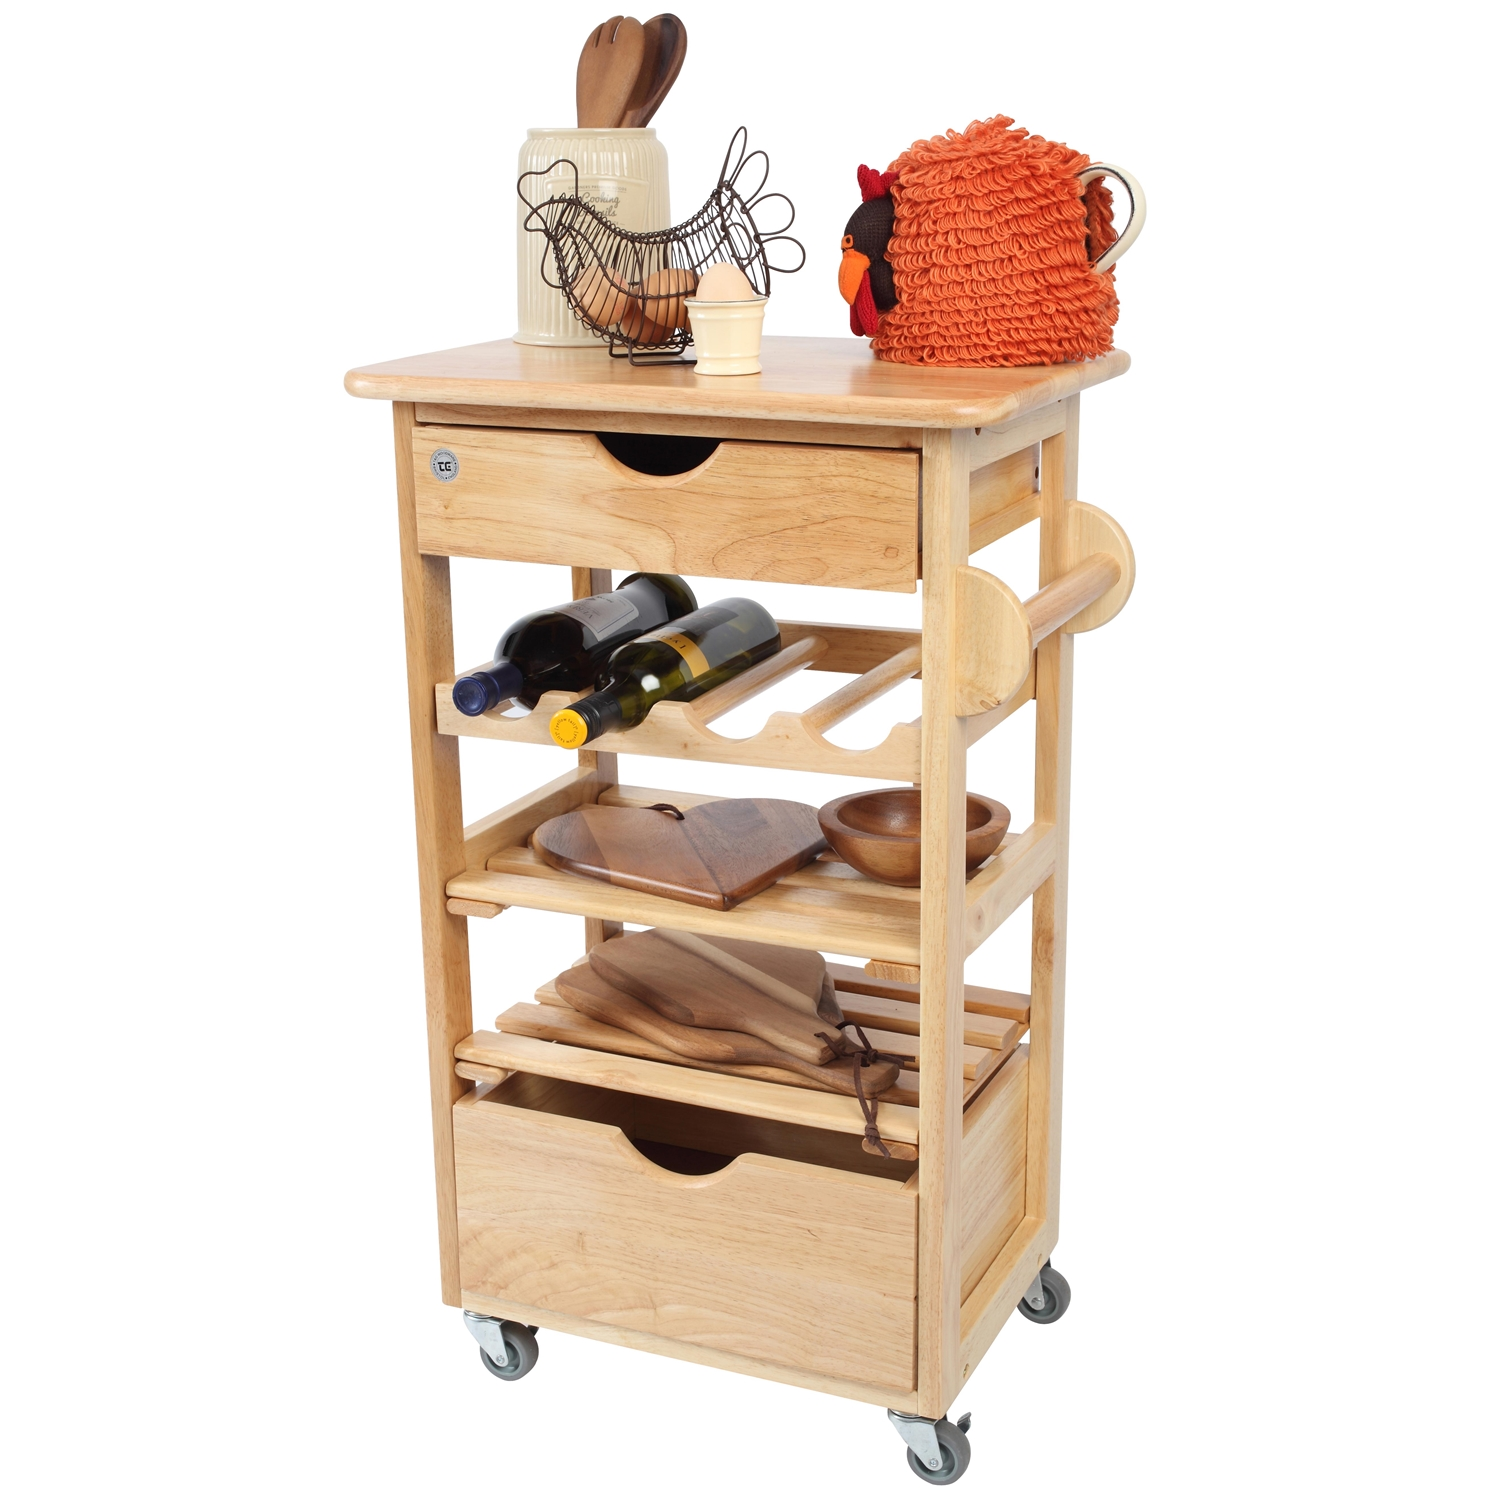 Image of T&G Woodware Kitchen Compact Trolley Flatpack